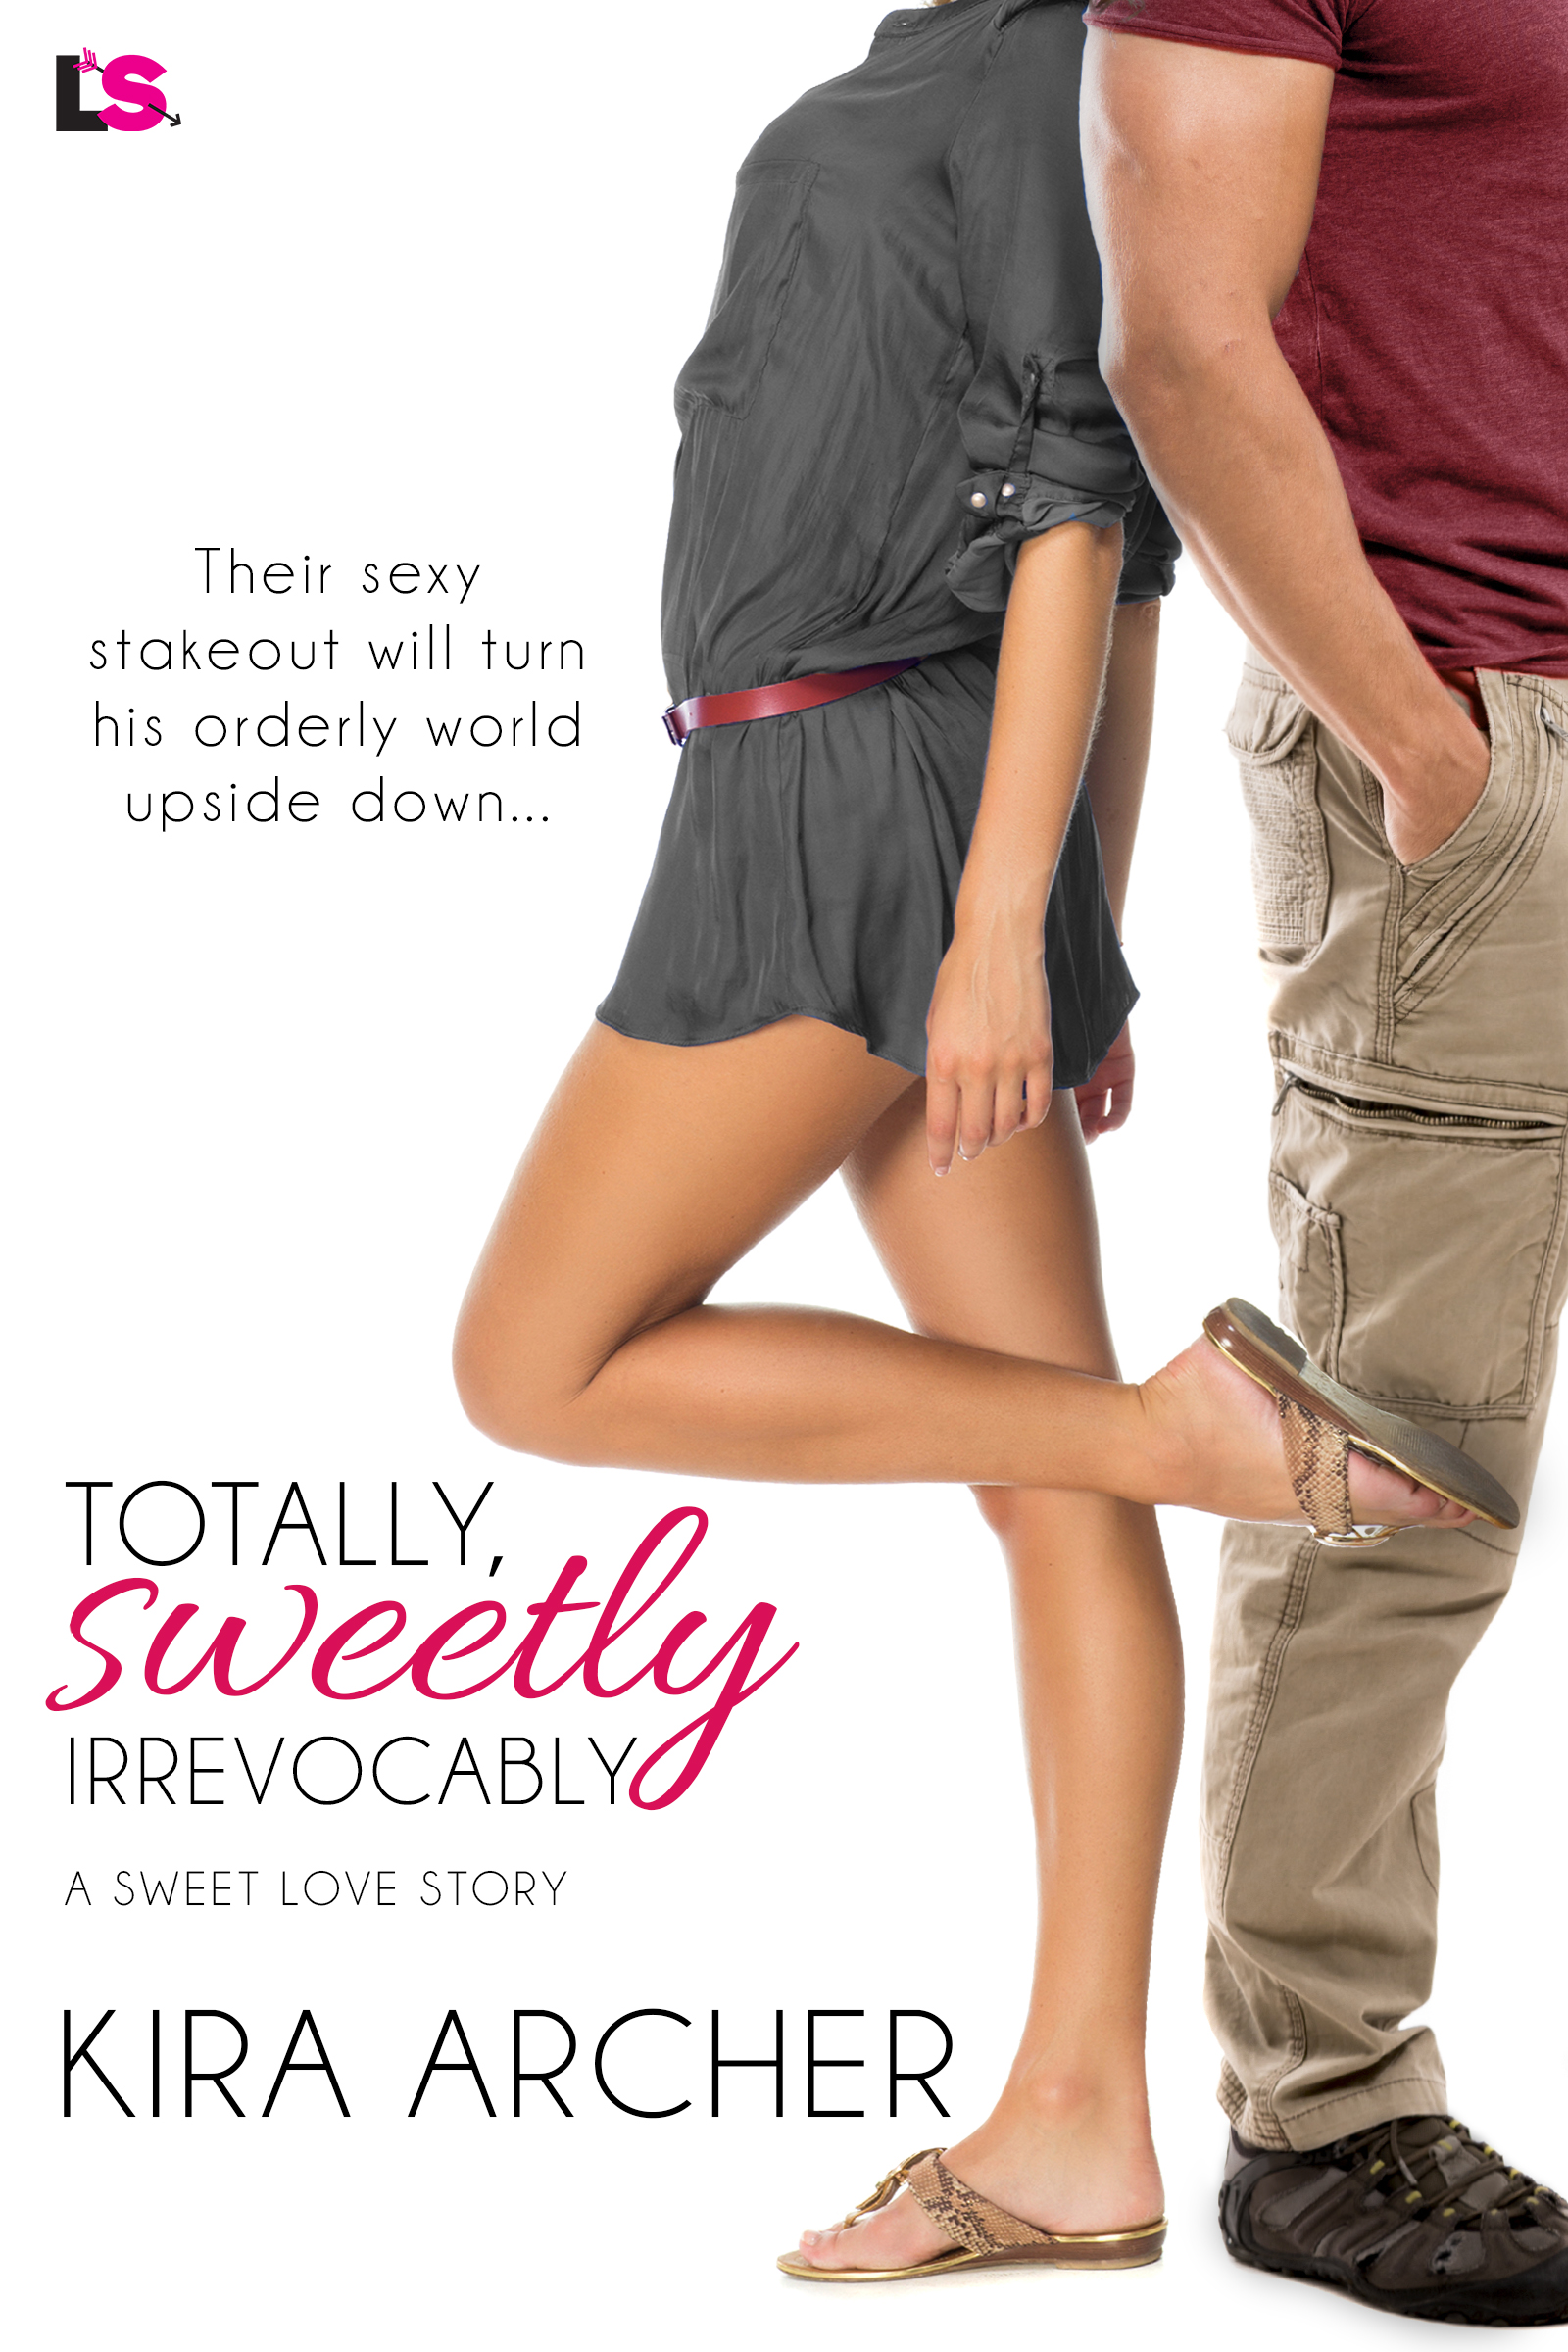 Totally, Sweetly Irrevocably by Kira Archer